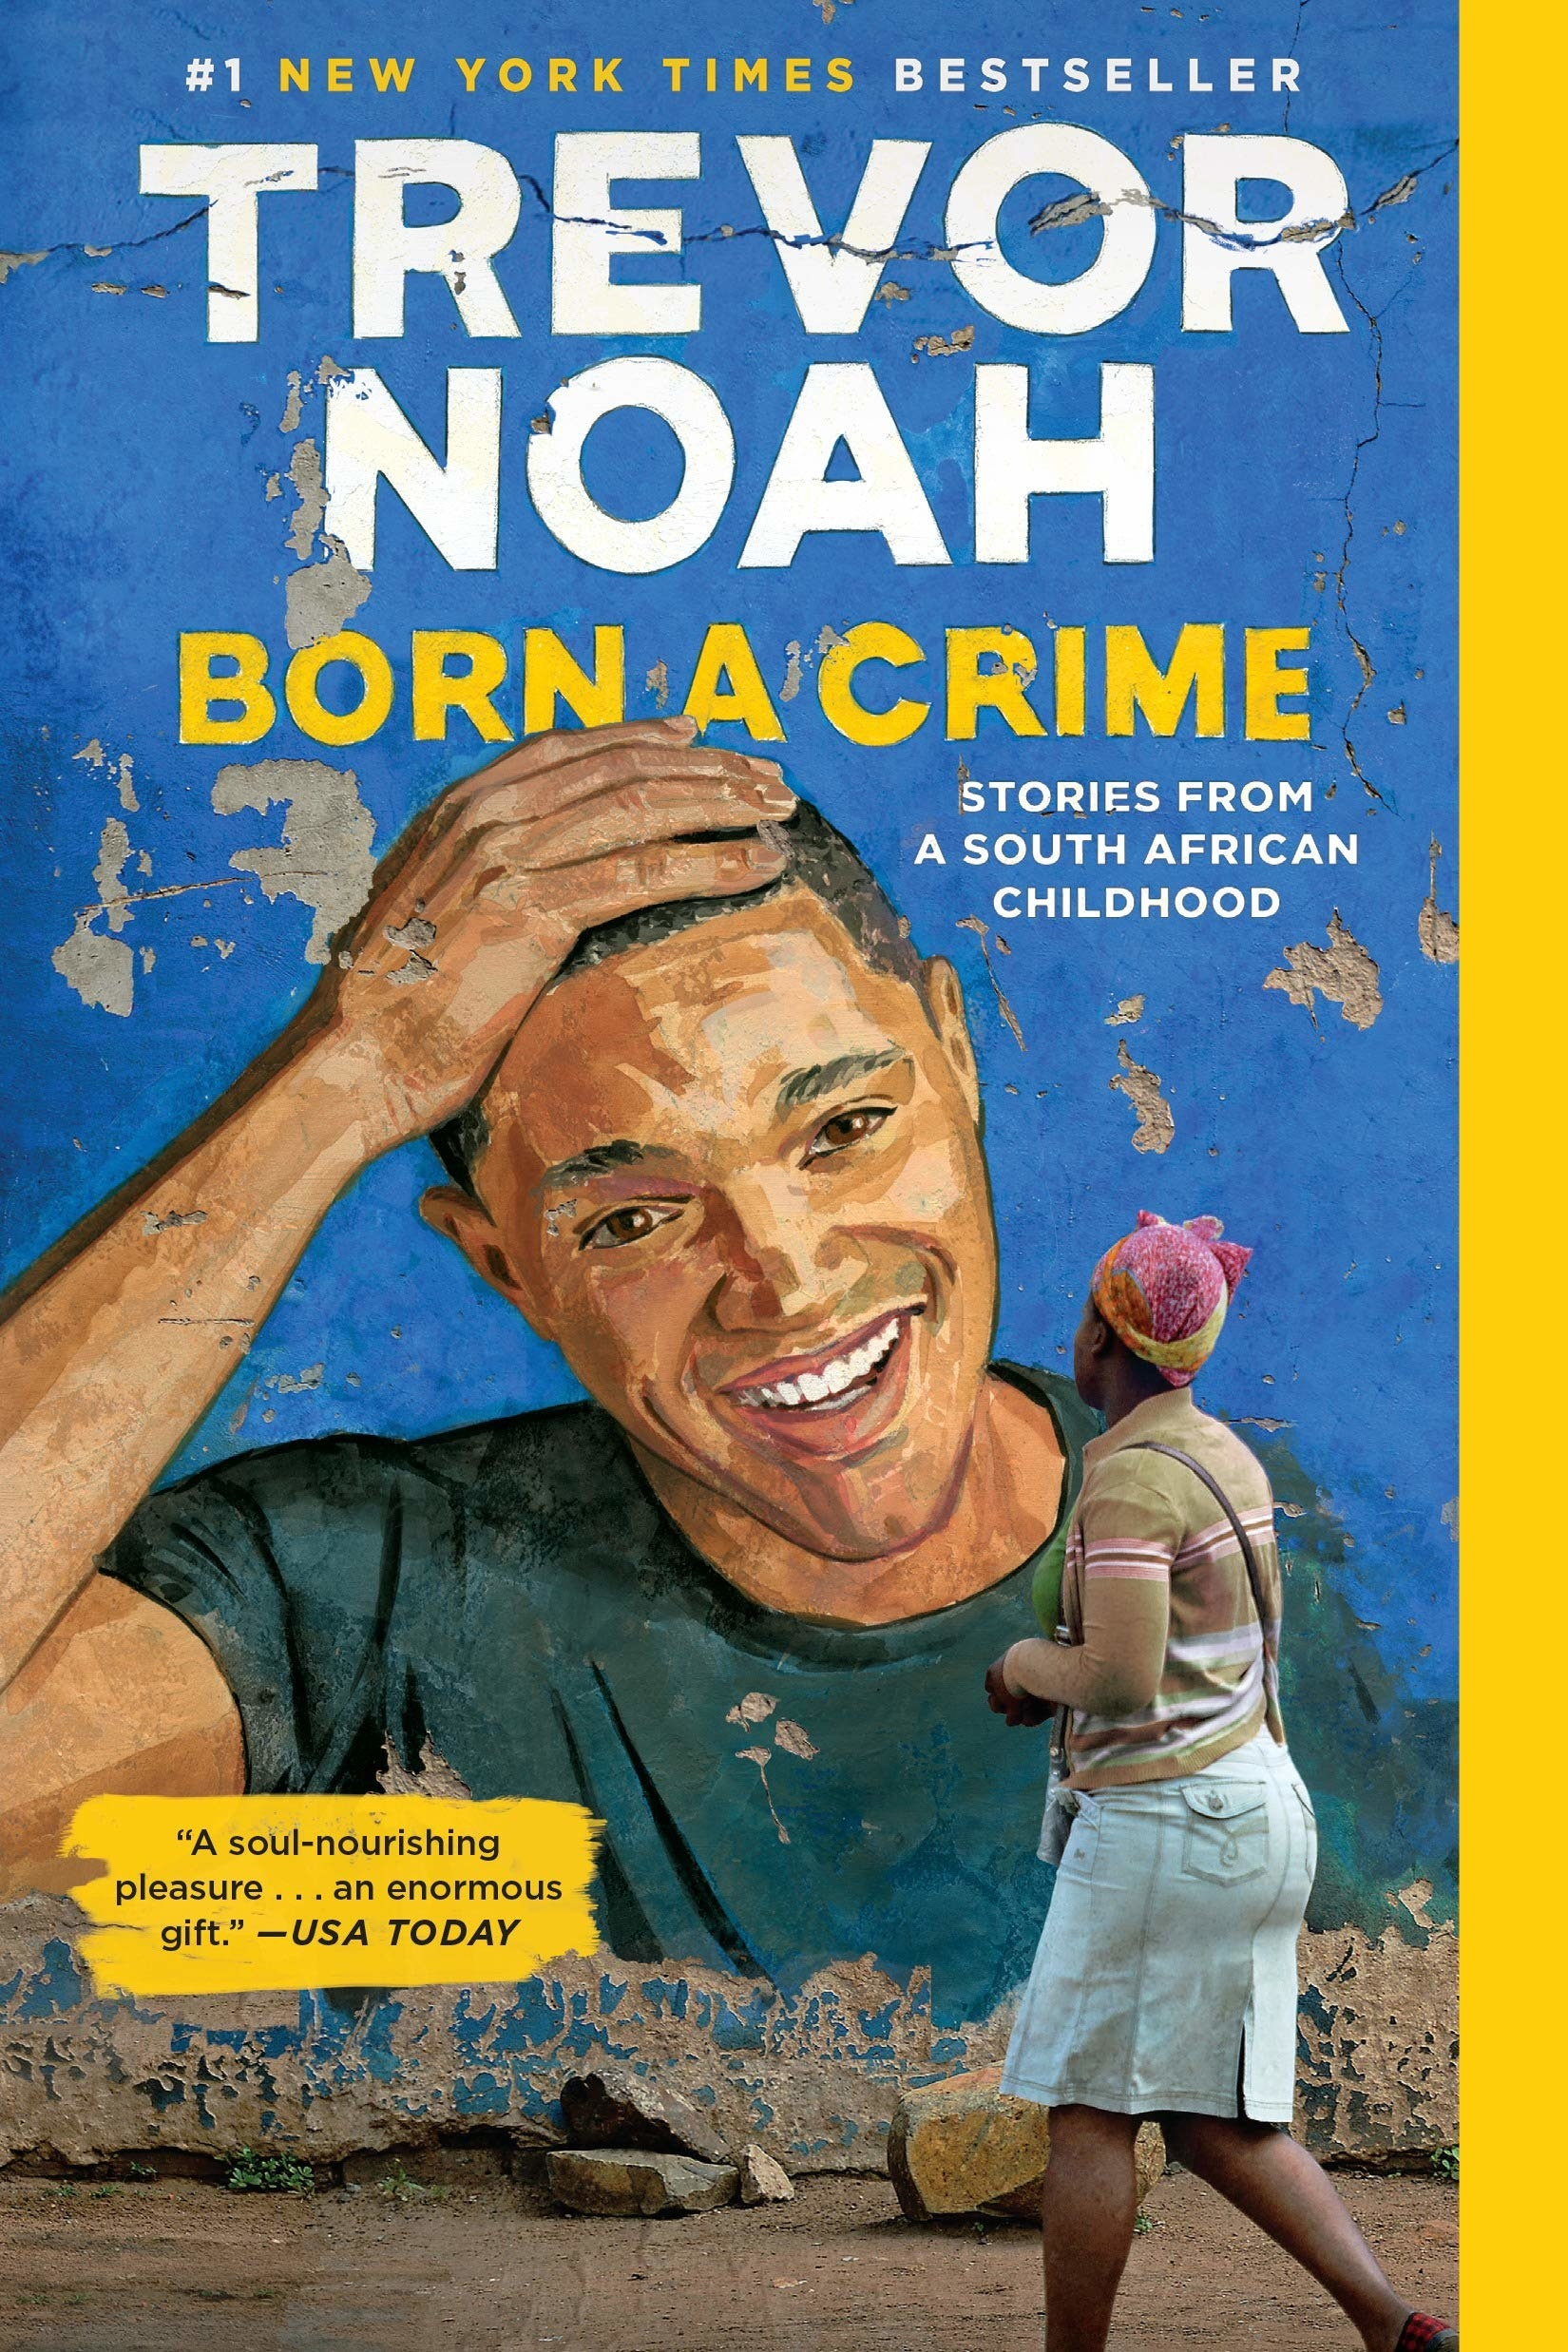 Photographed cover of person looking at mural of Trevor Noah on a wall